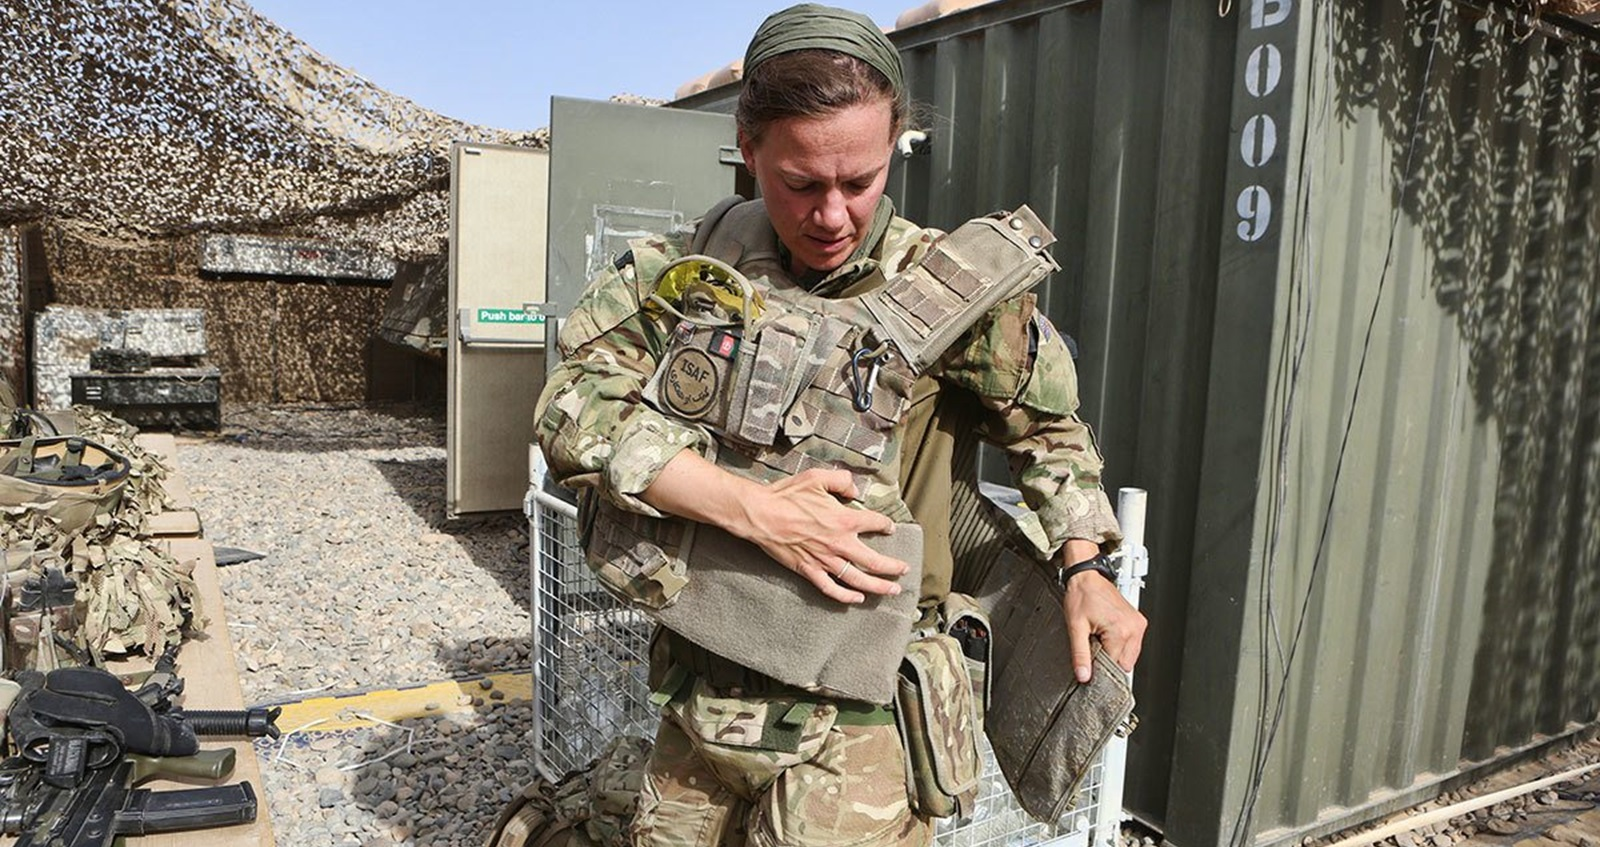 Anna Crossley in Helmand strapping on equipment vest